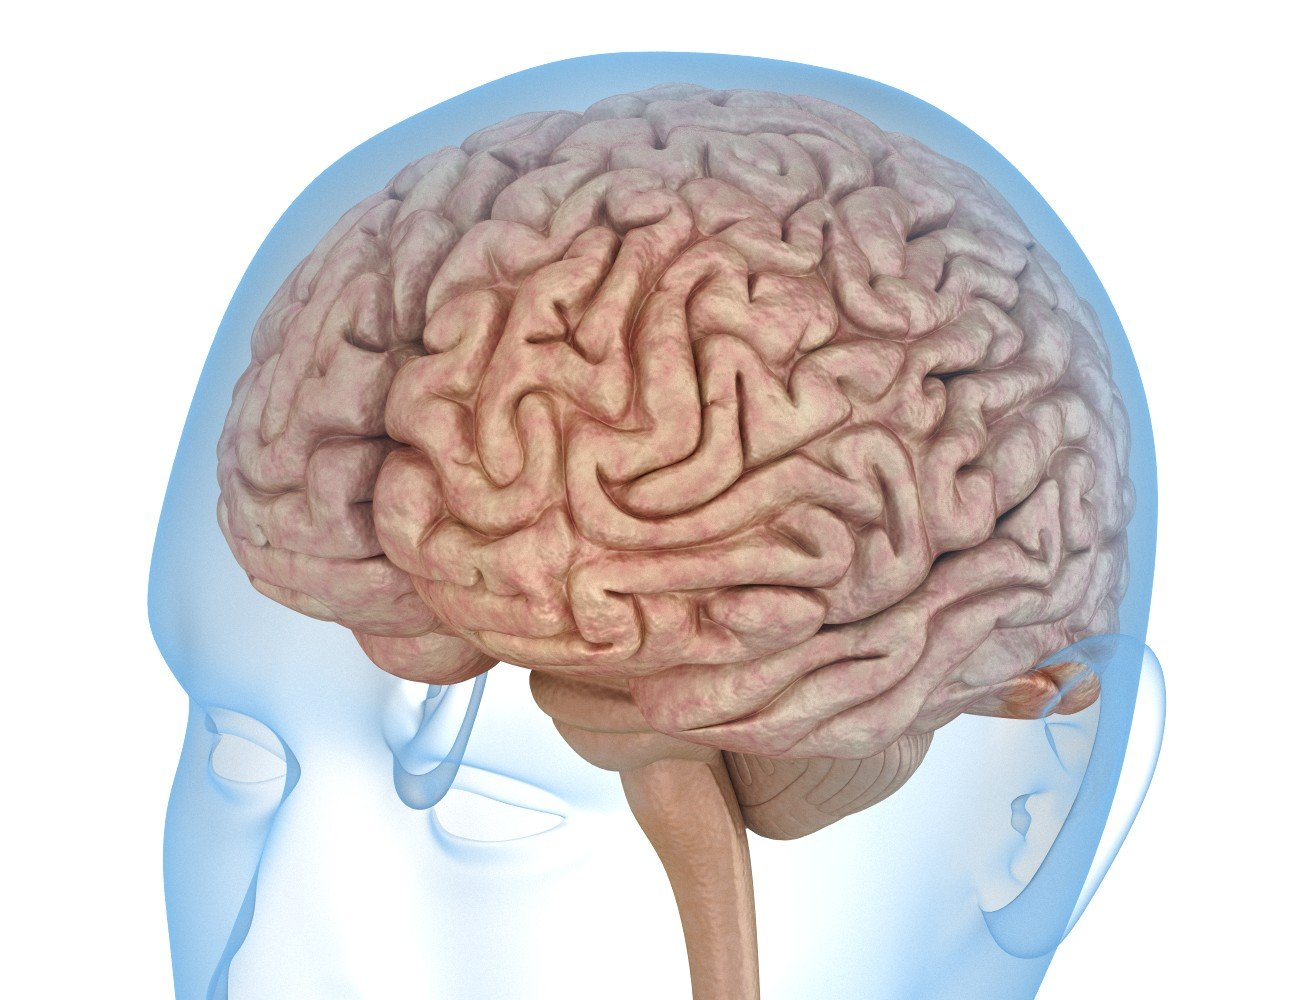 Human Brain anatomy 3D Model in Anatomy 3DExport